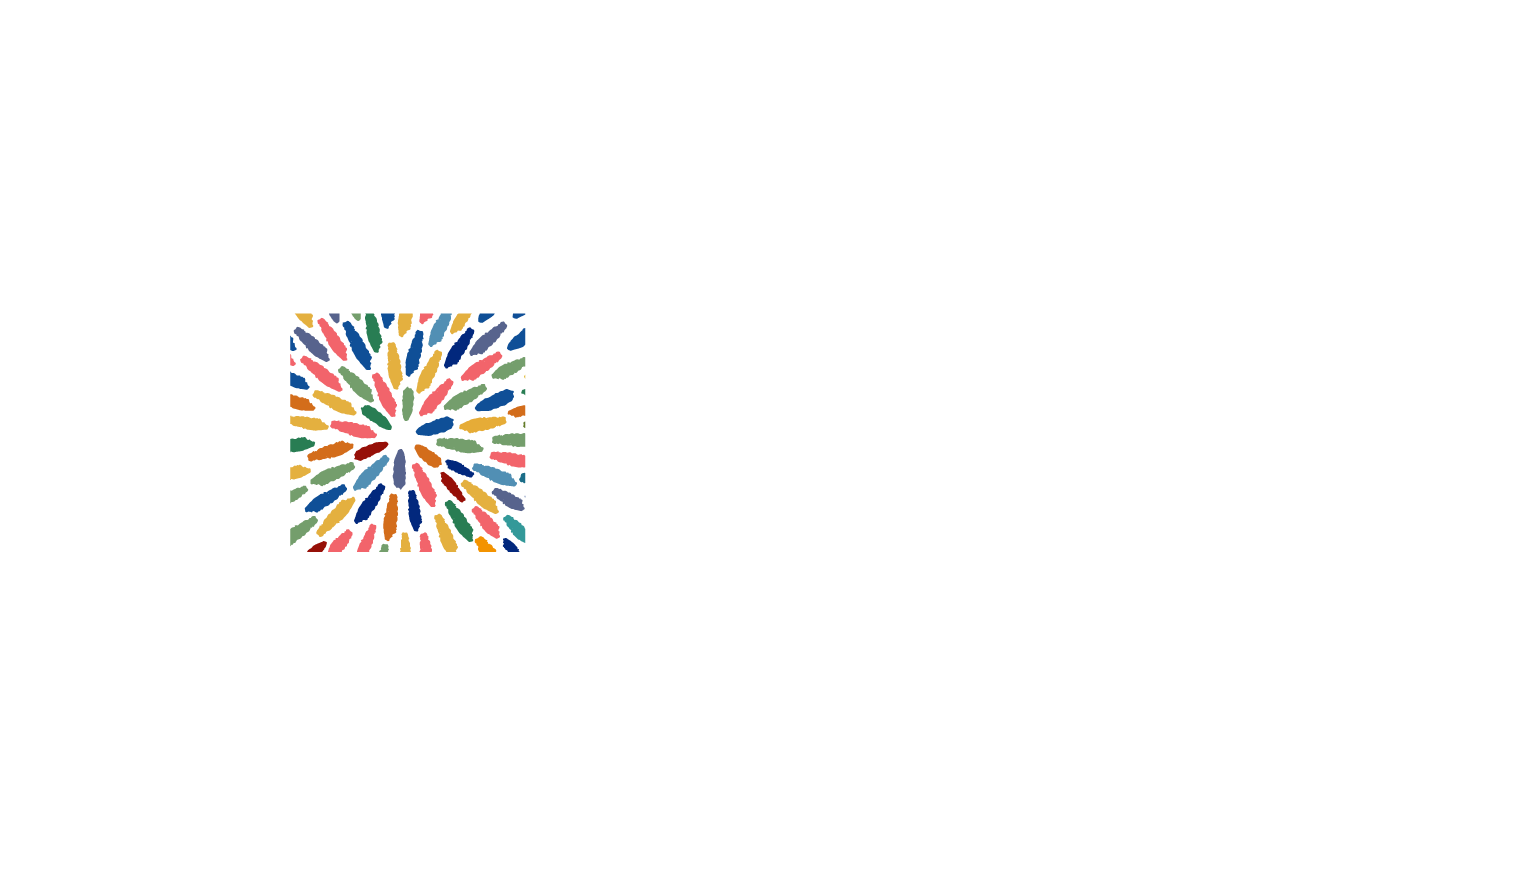 Rural Canvas project